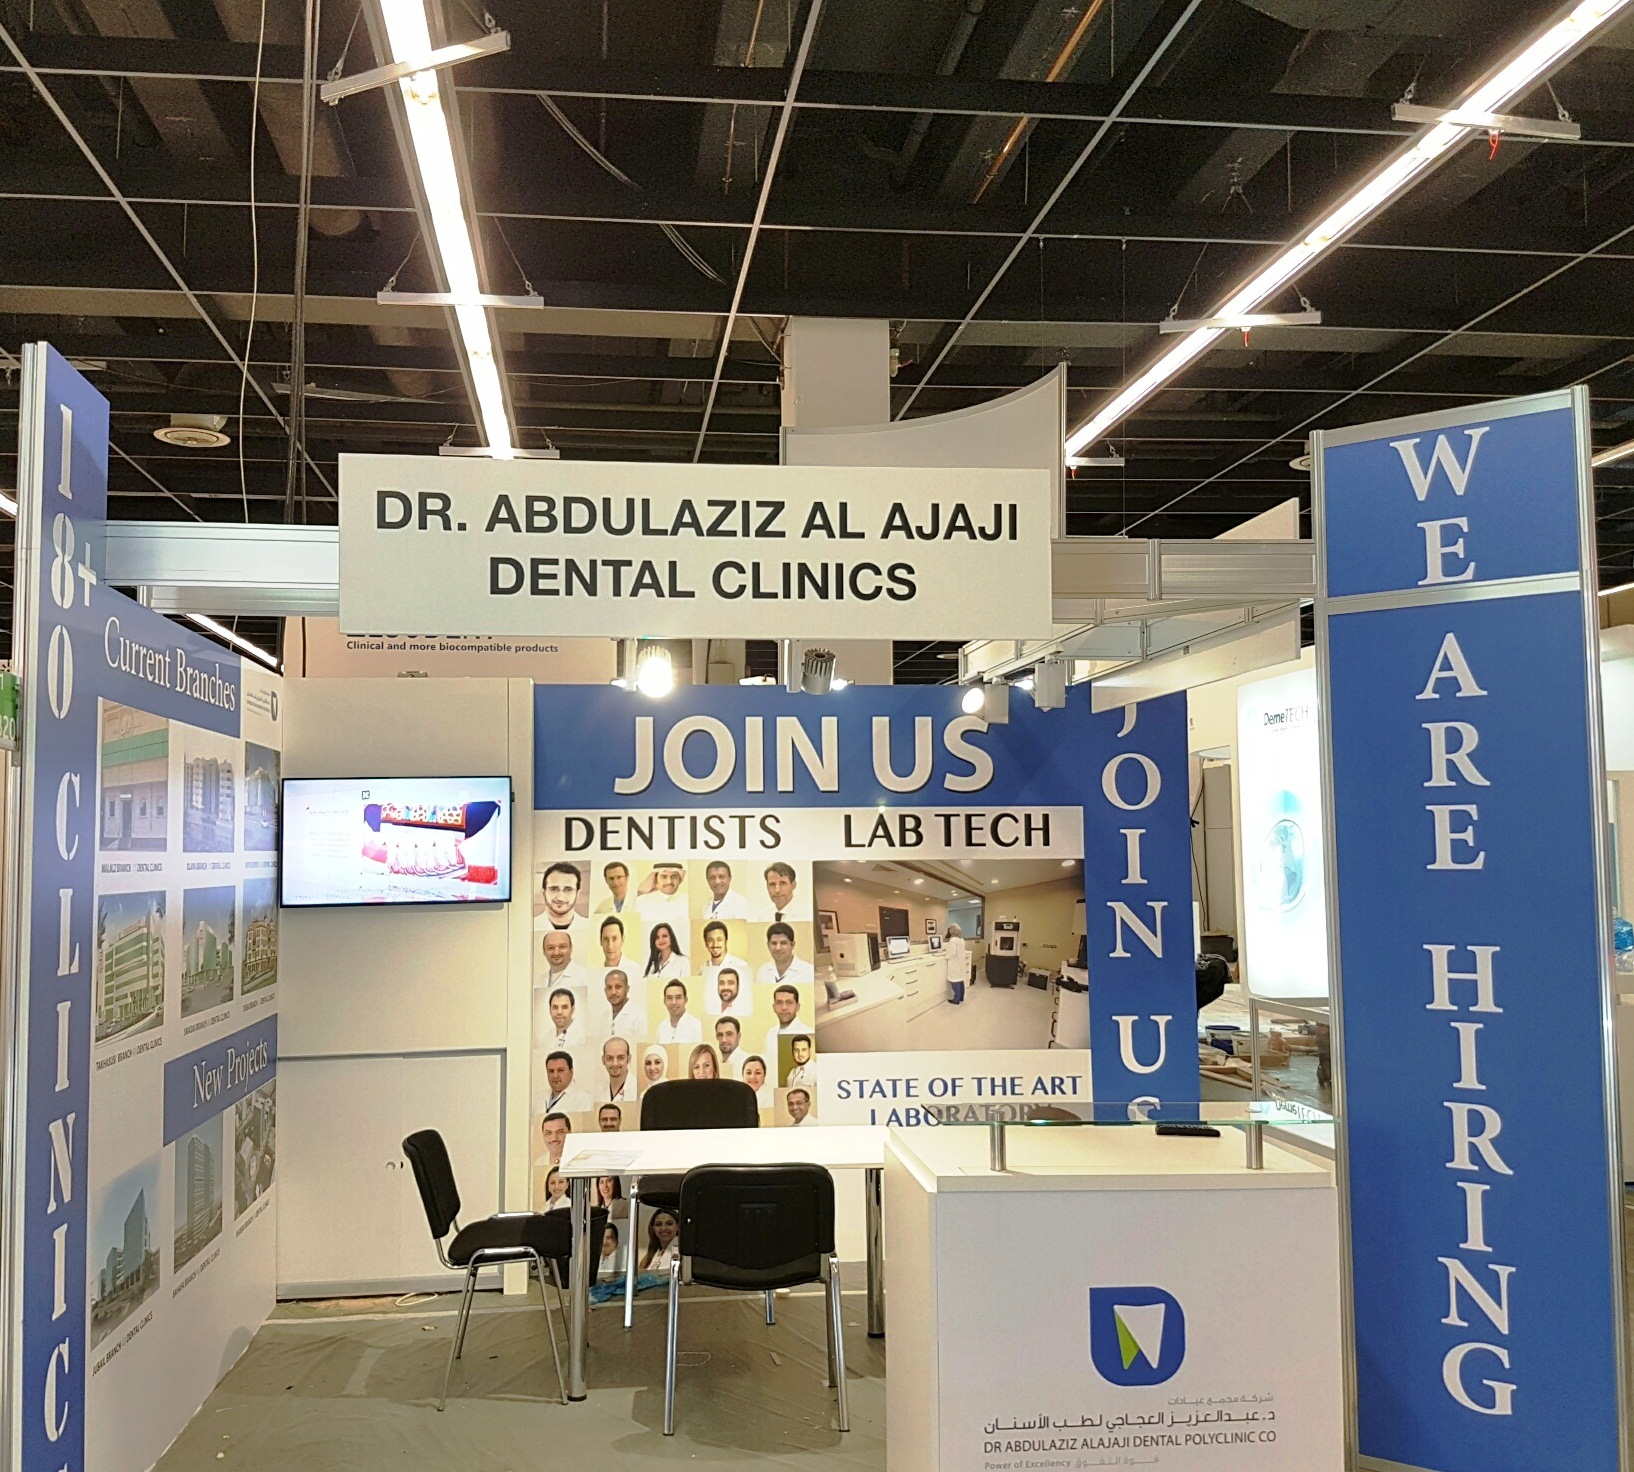 Dr.Abdulaziz Al Ajaji Dental Polyclinic Company participated in the conference IDS 2017